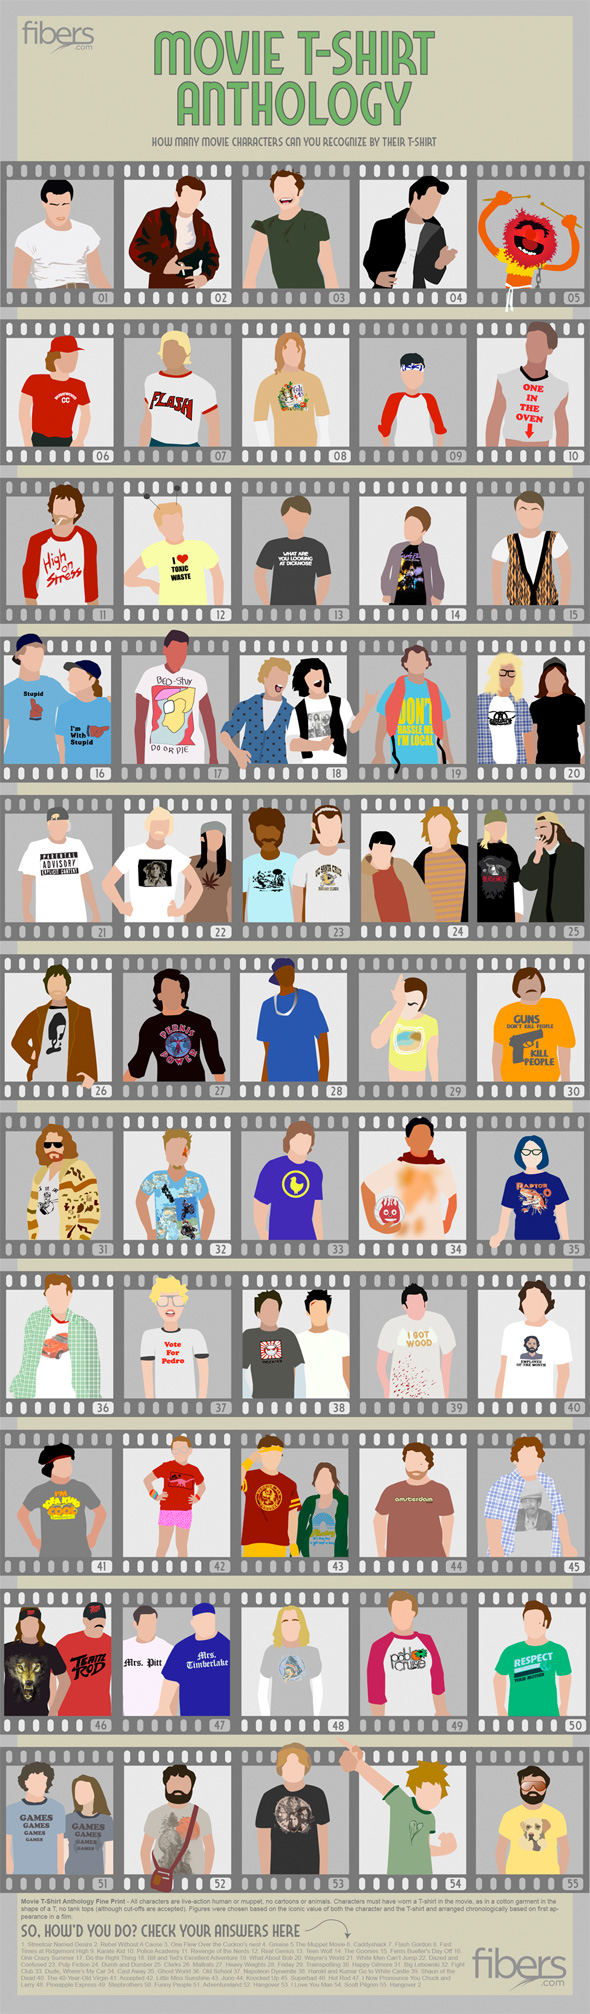 Movie T-Shirt Anthology